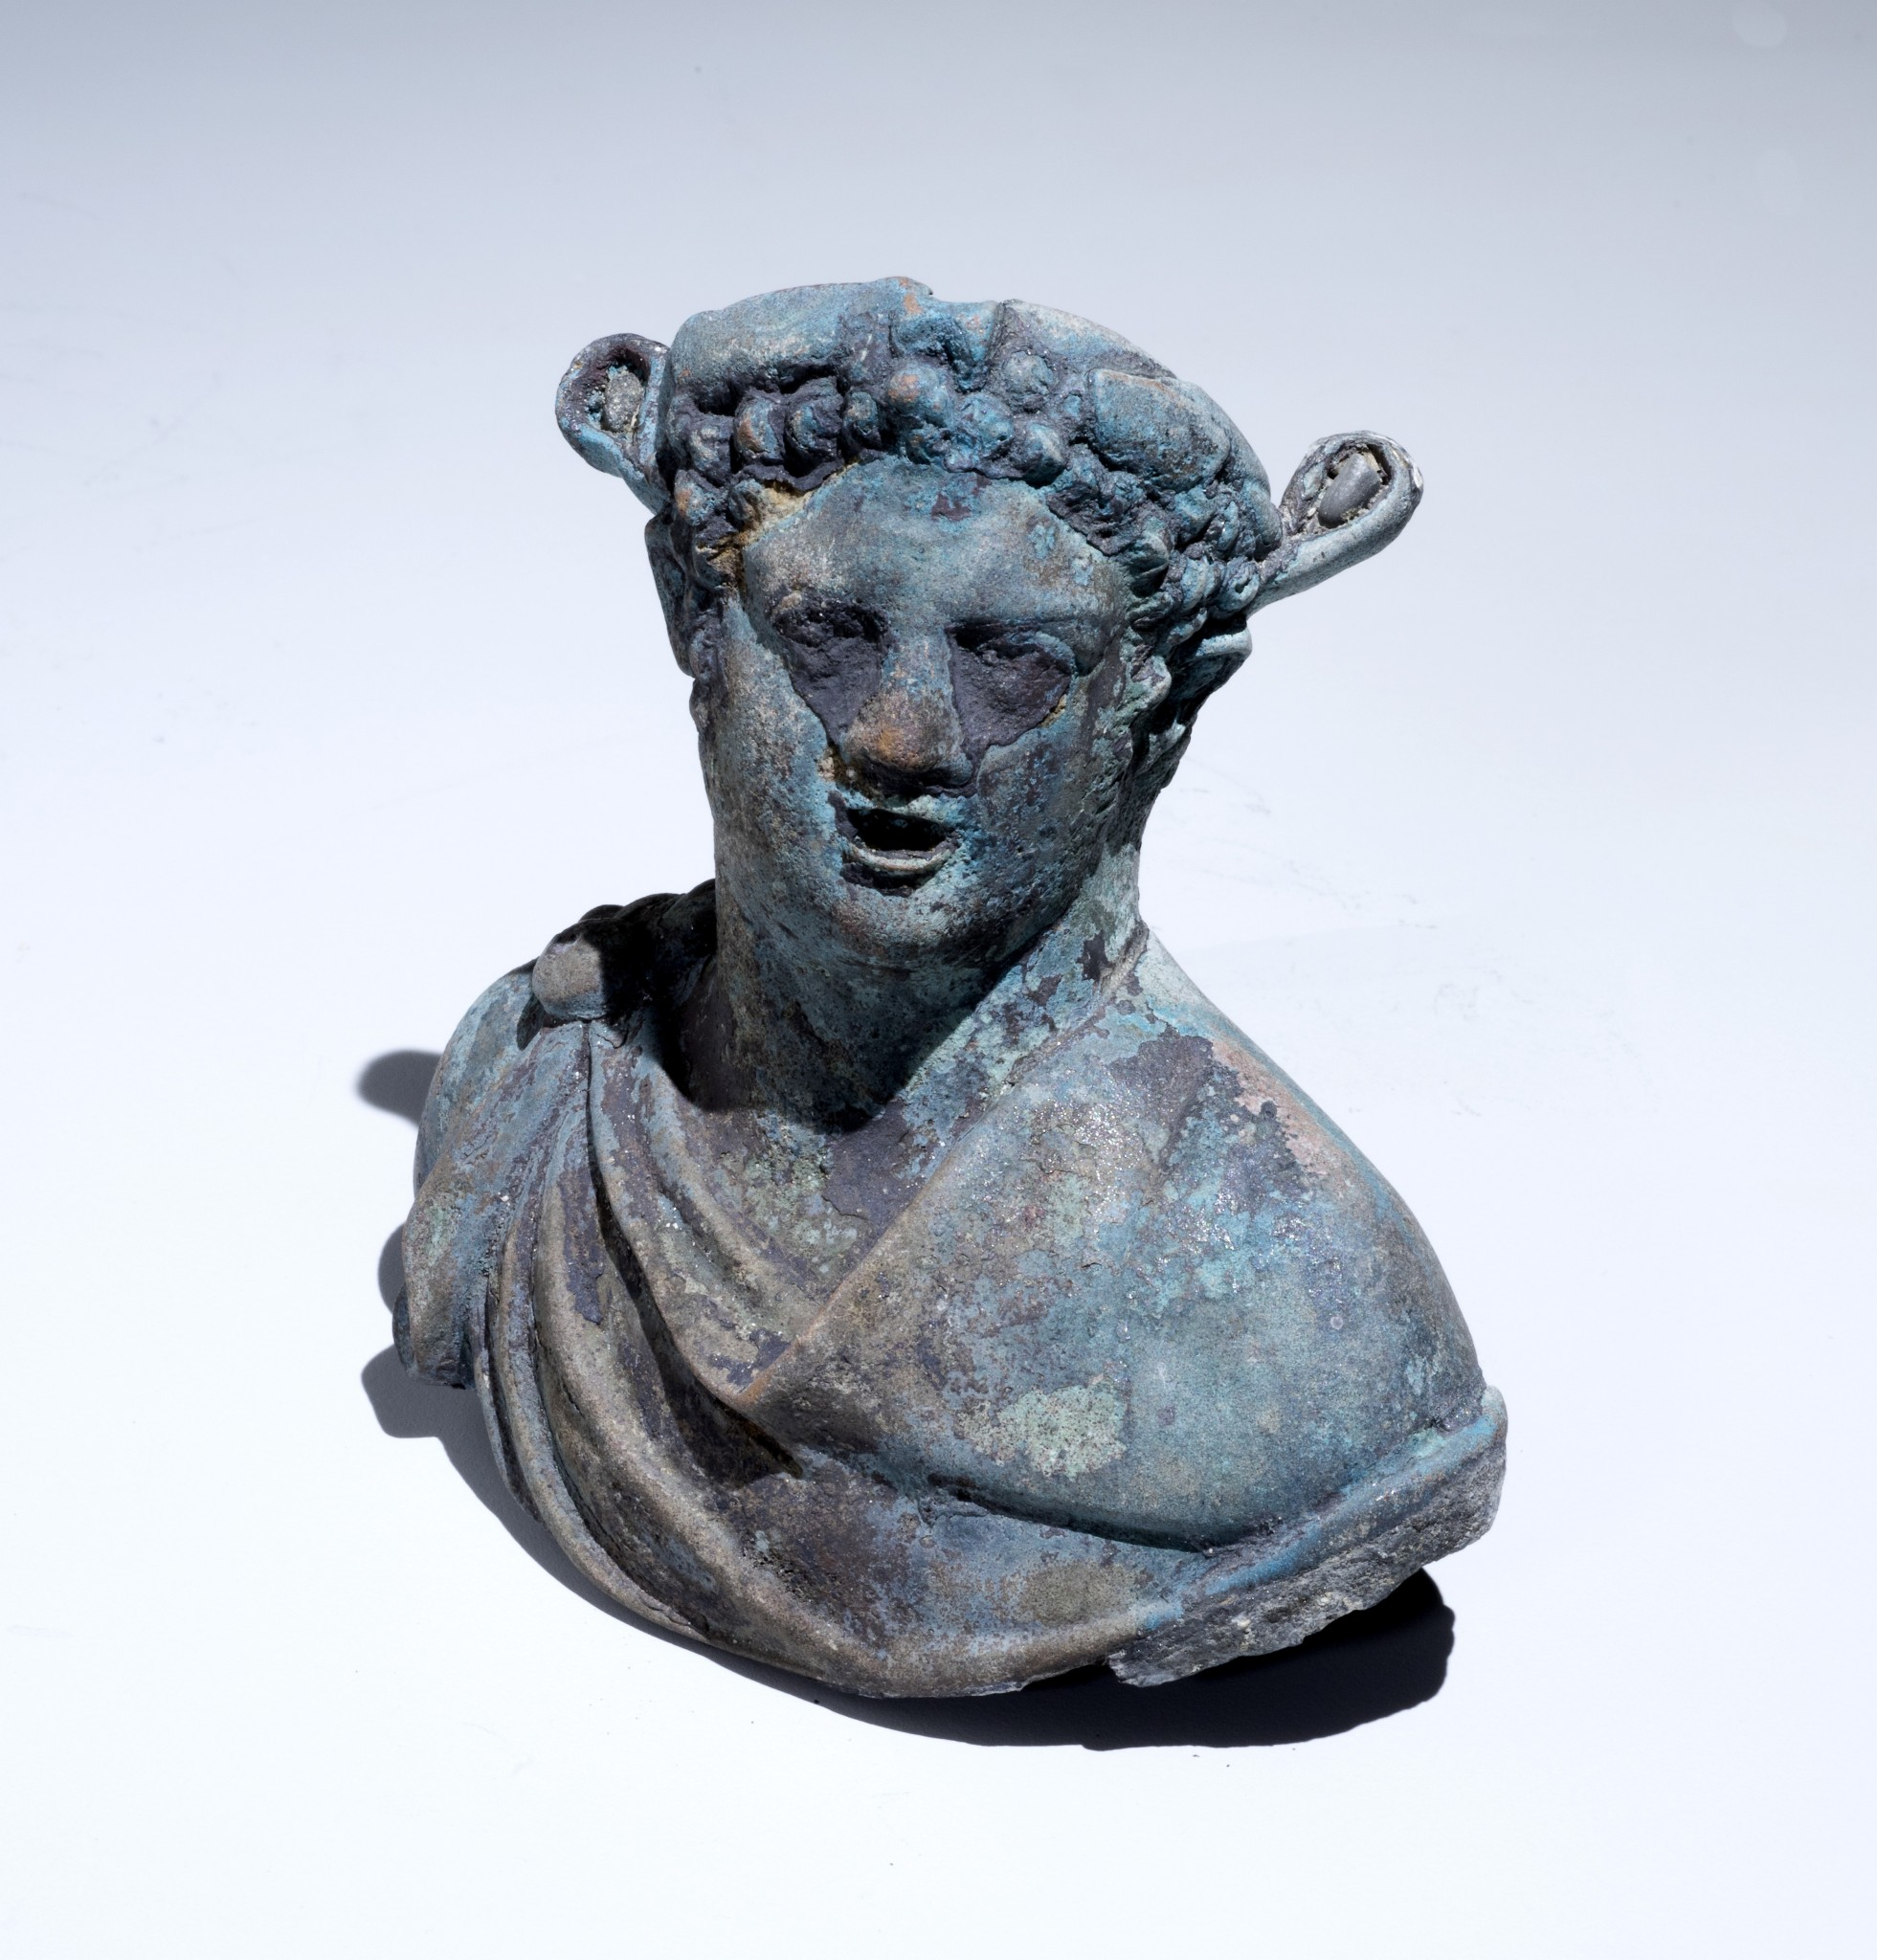 A figurine of Dionysus, the god of wine. Photo courtesy of the Israel Antiquities Authority